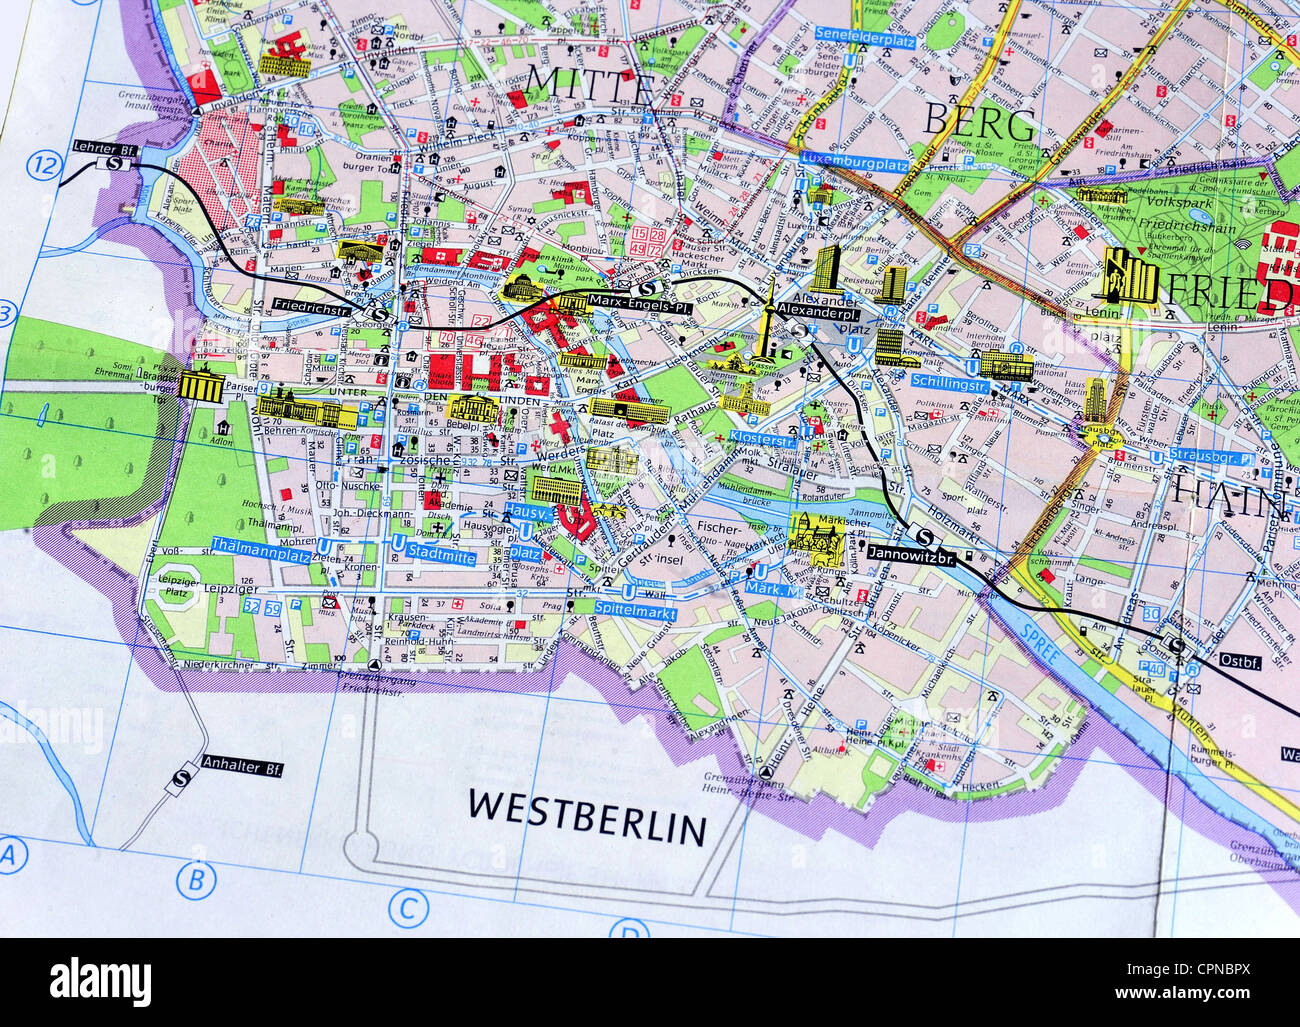 Berlin Map Stock Photos & Berlin Map Stock Images - Alamy